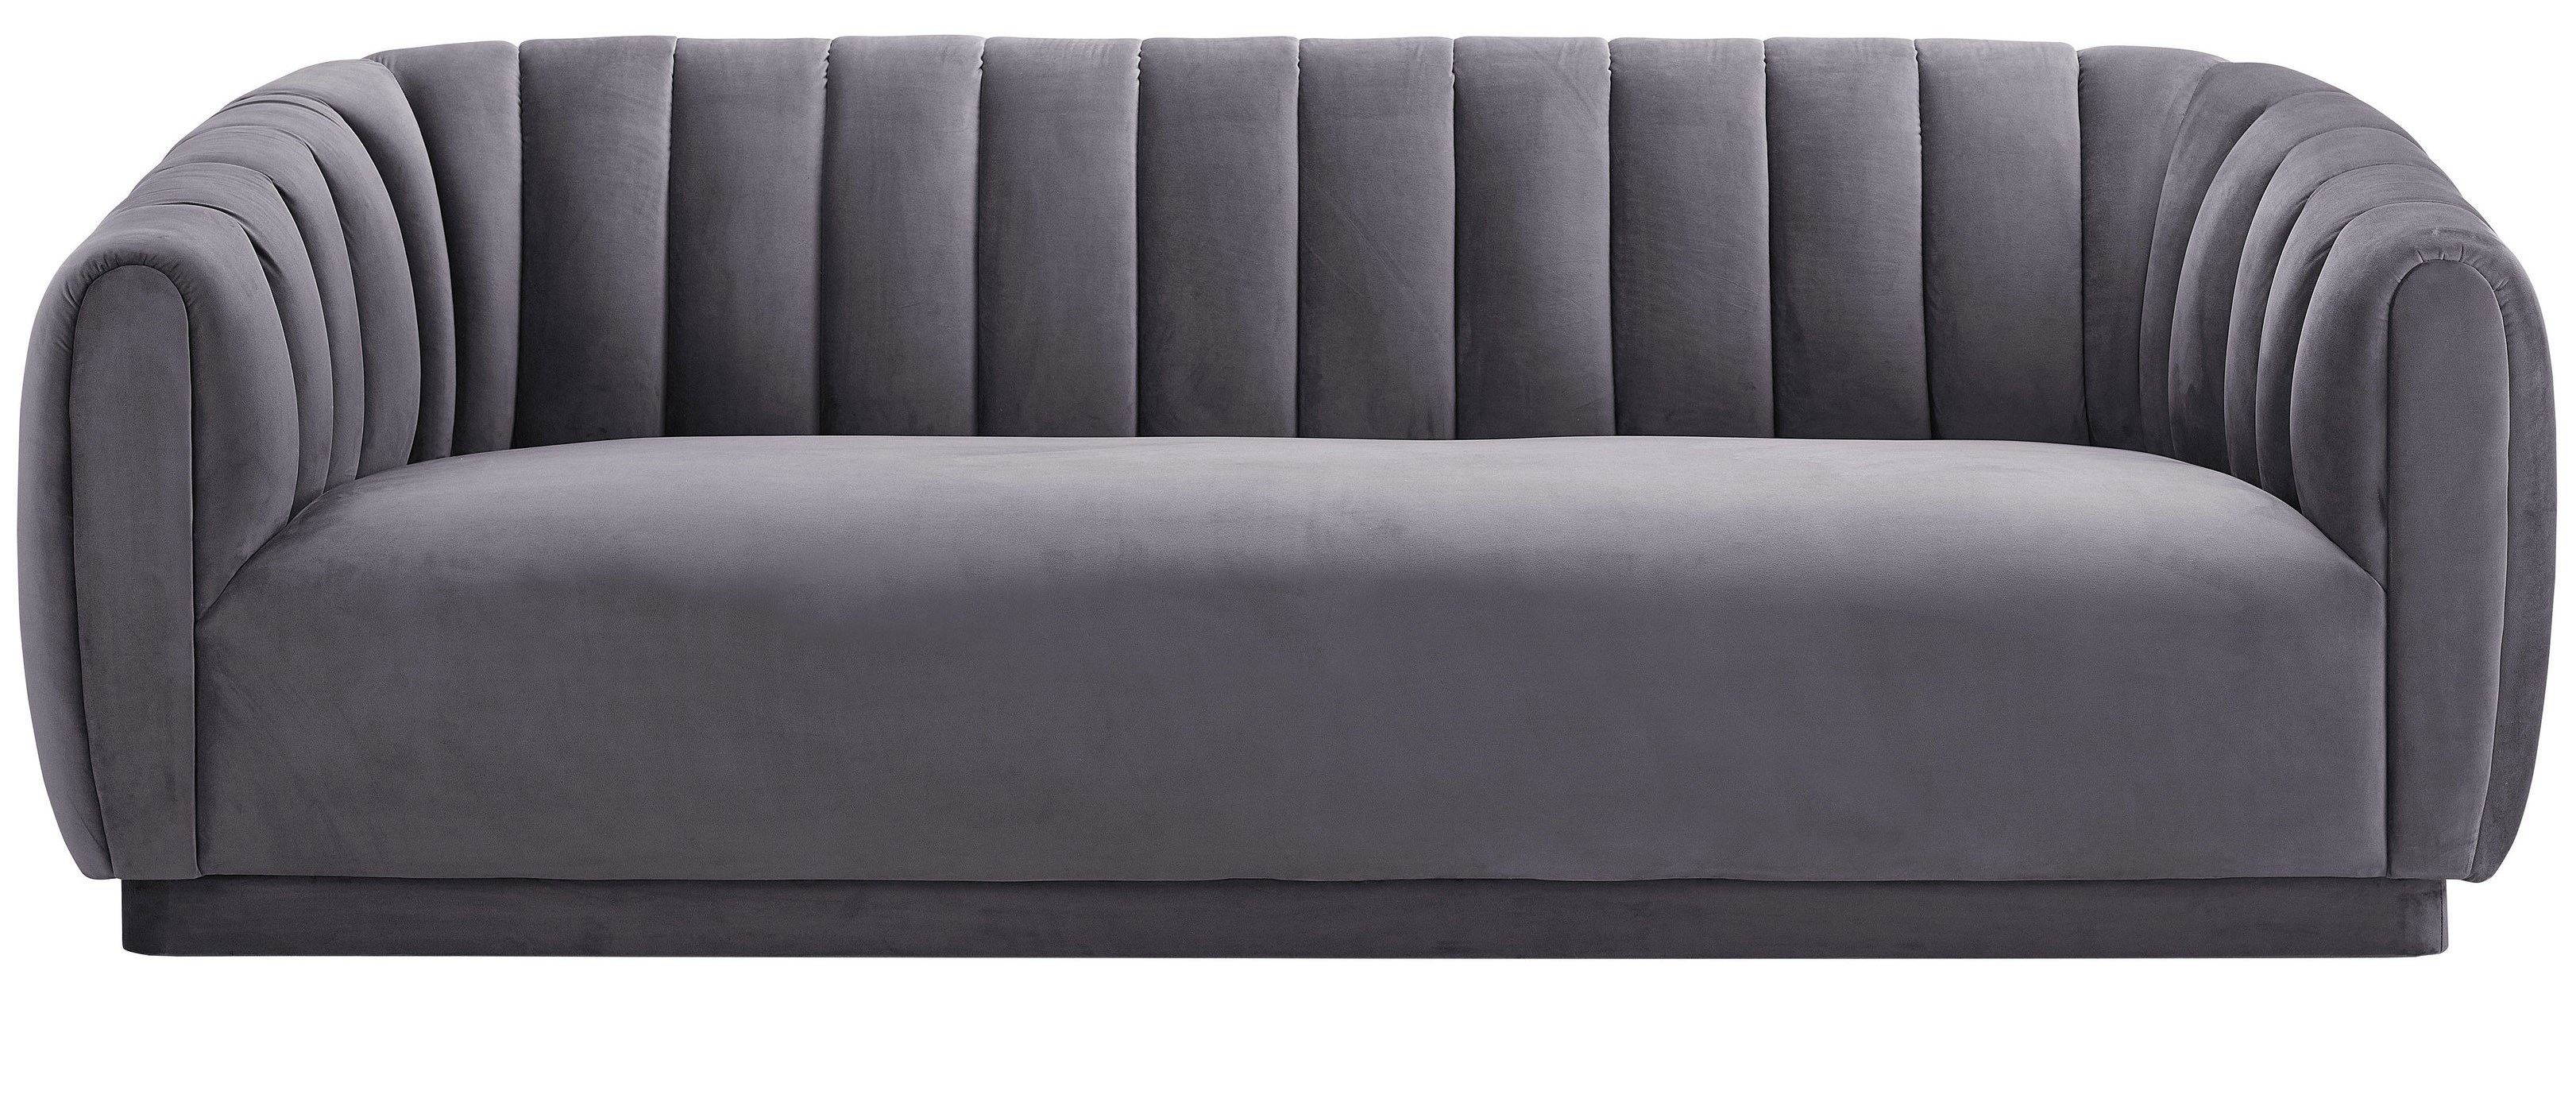 Marissa Velvet Sofa, Gray With Regard To Marissa Sofa Chairs (View 3 of 25)